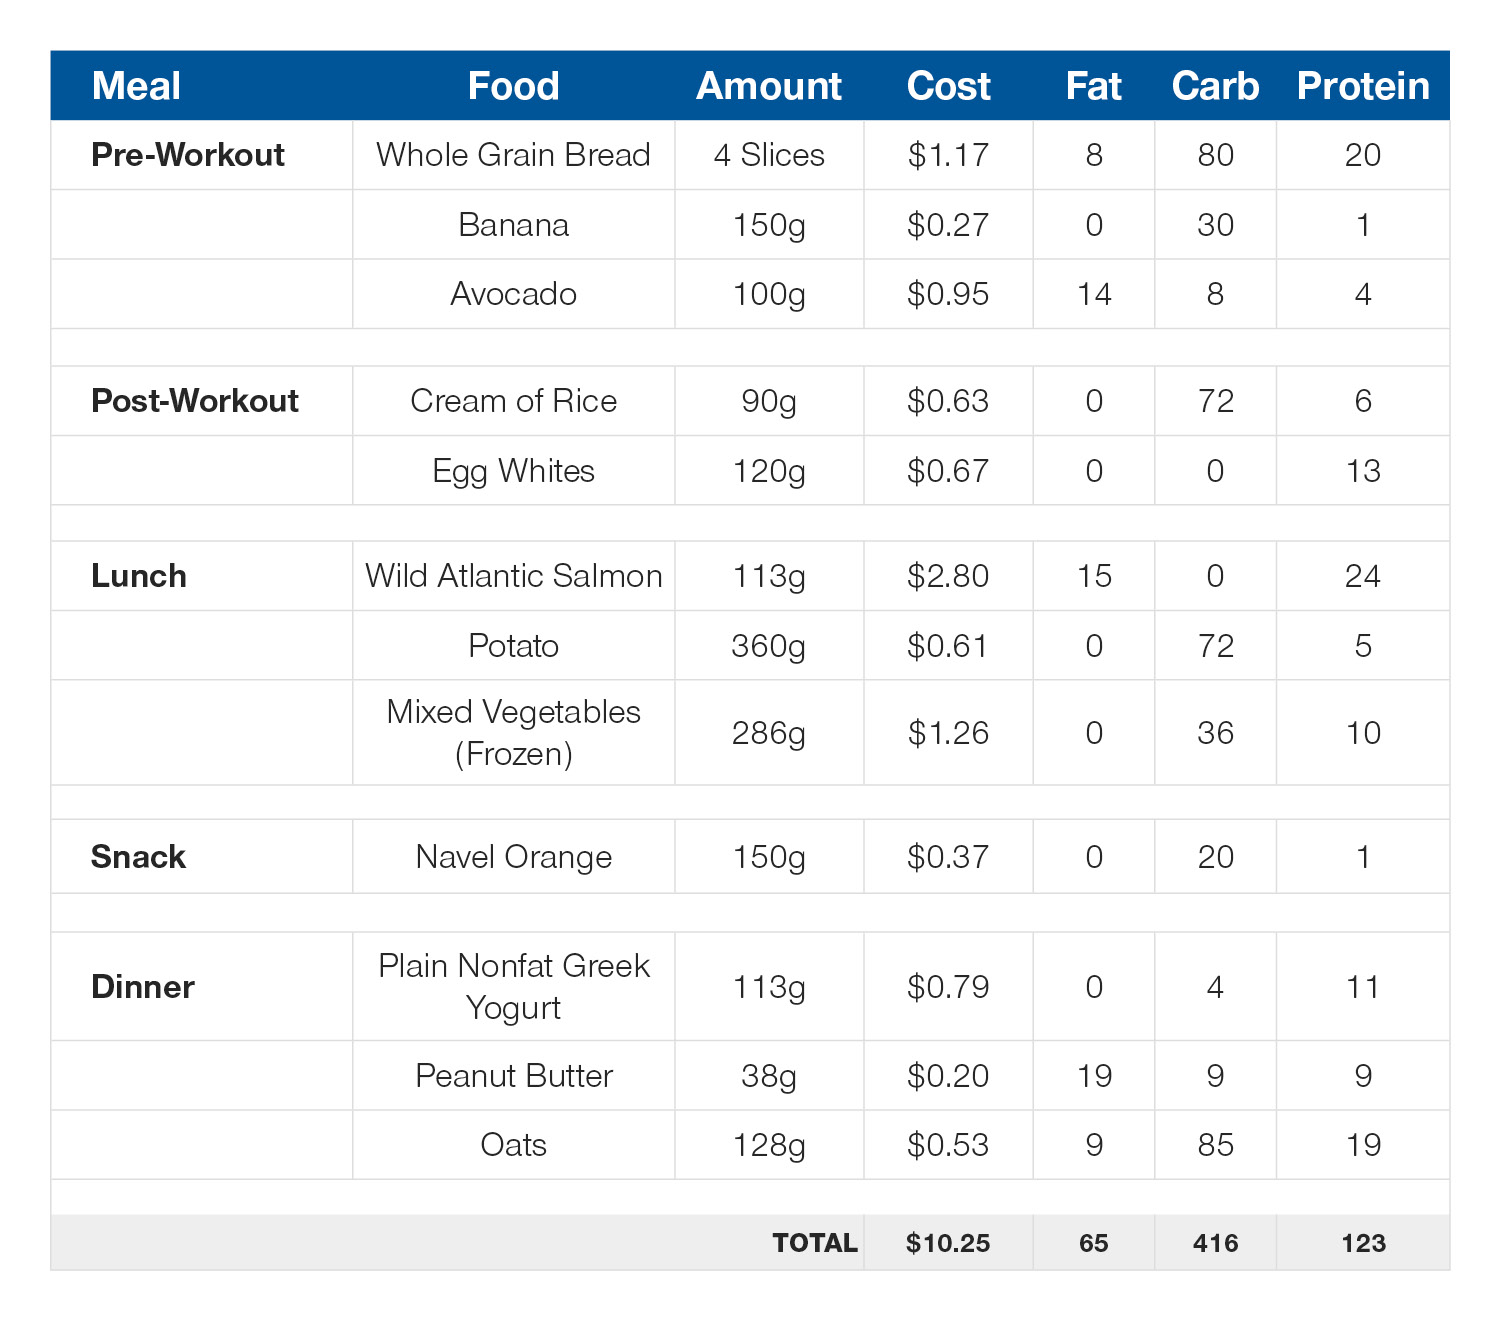 Daily meal plan: 125g protein, 66g fat, 415g carb